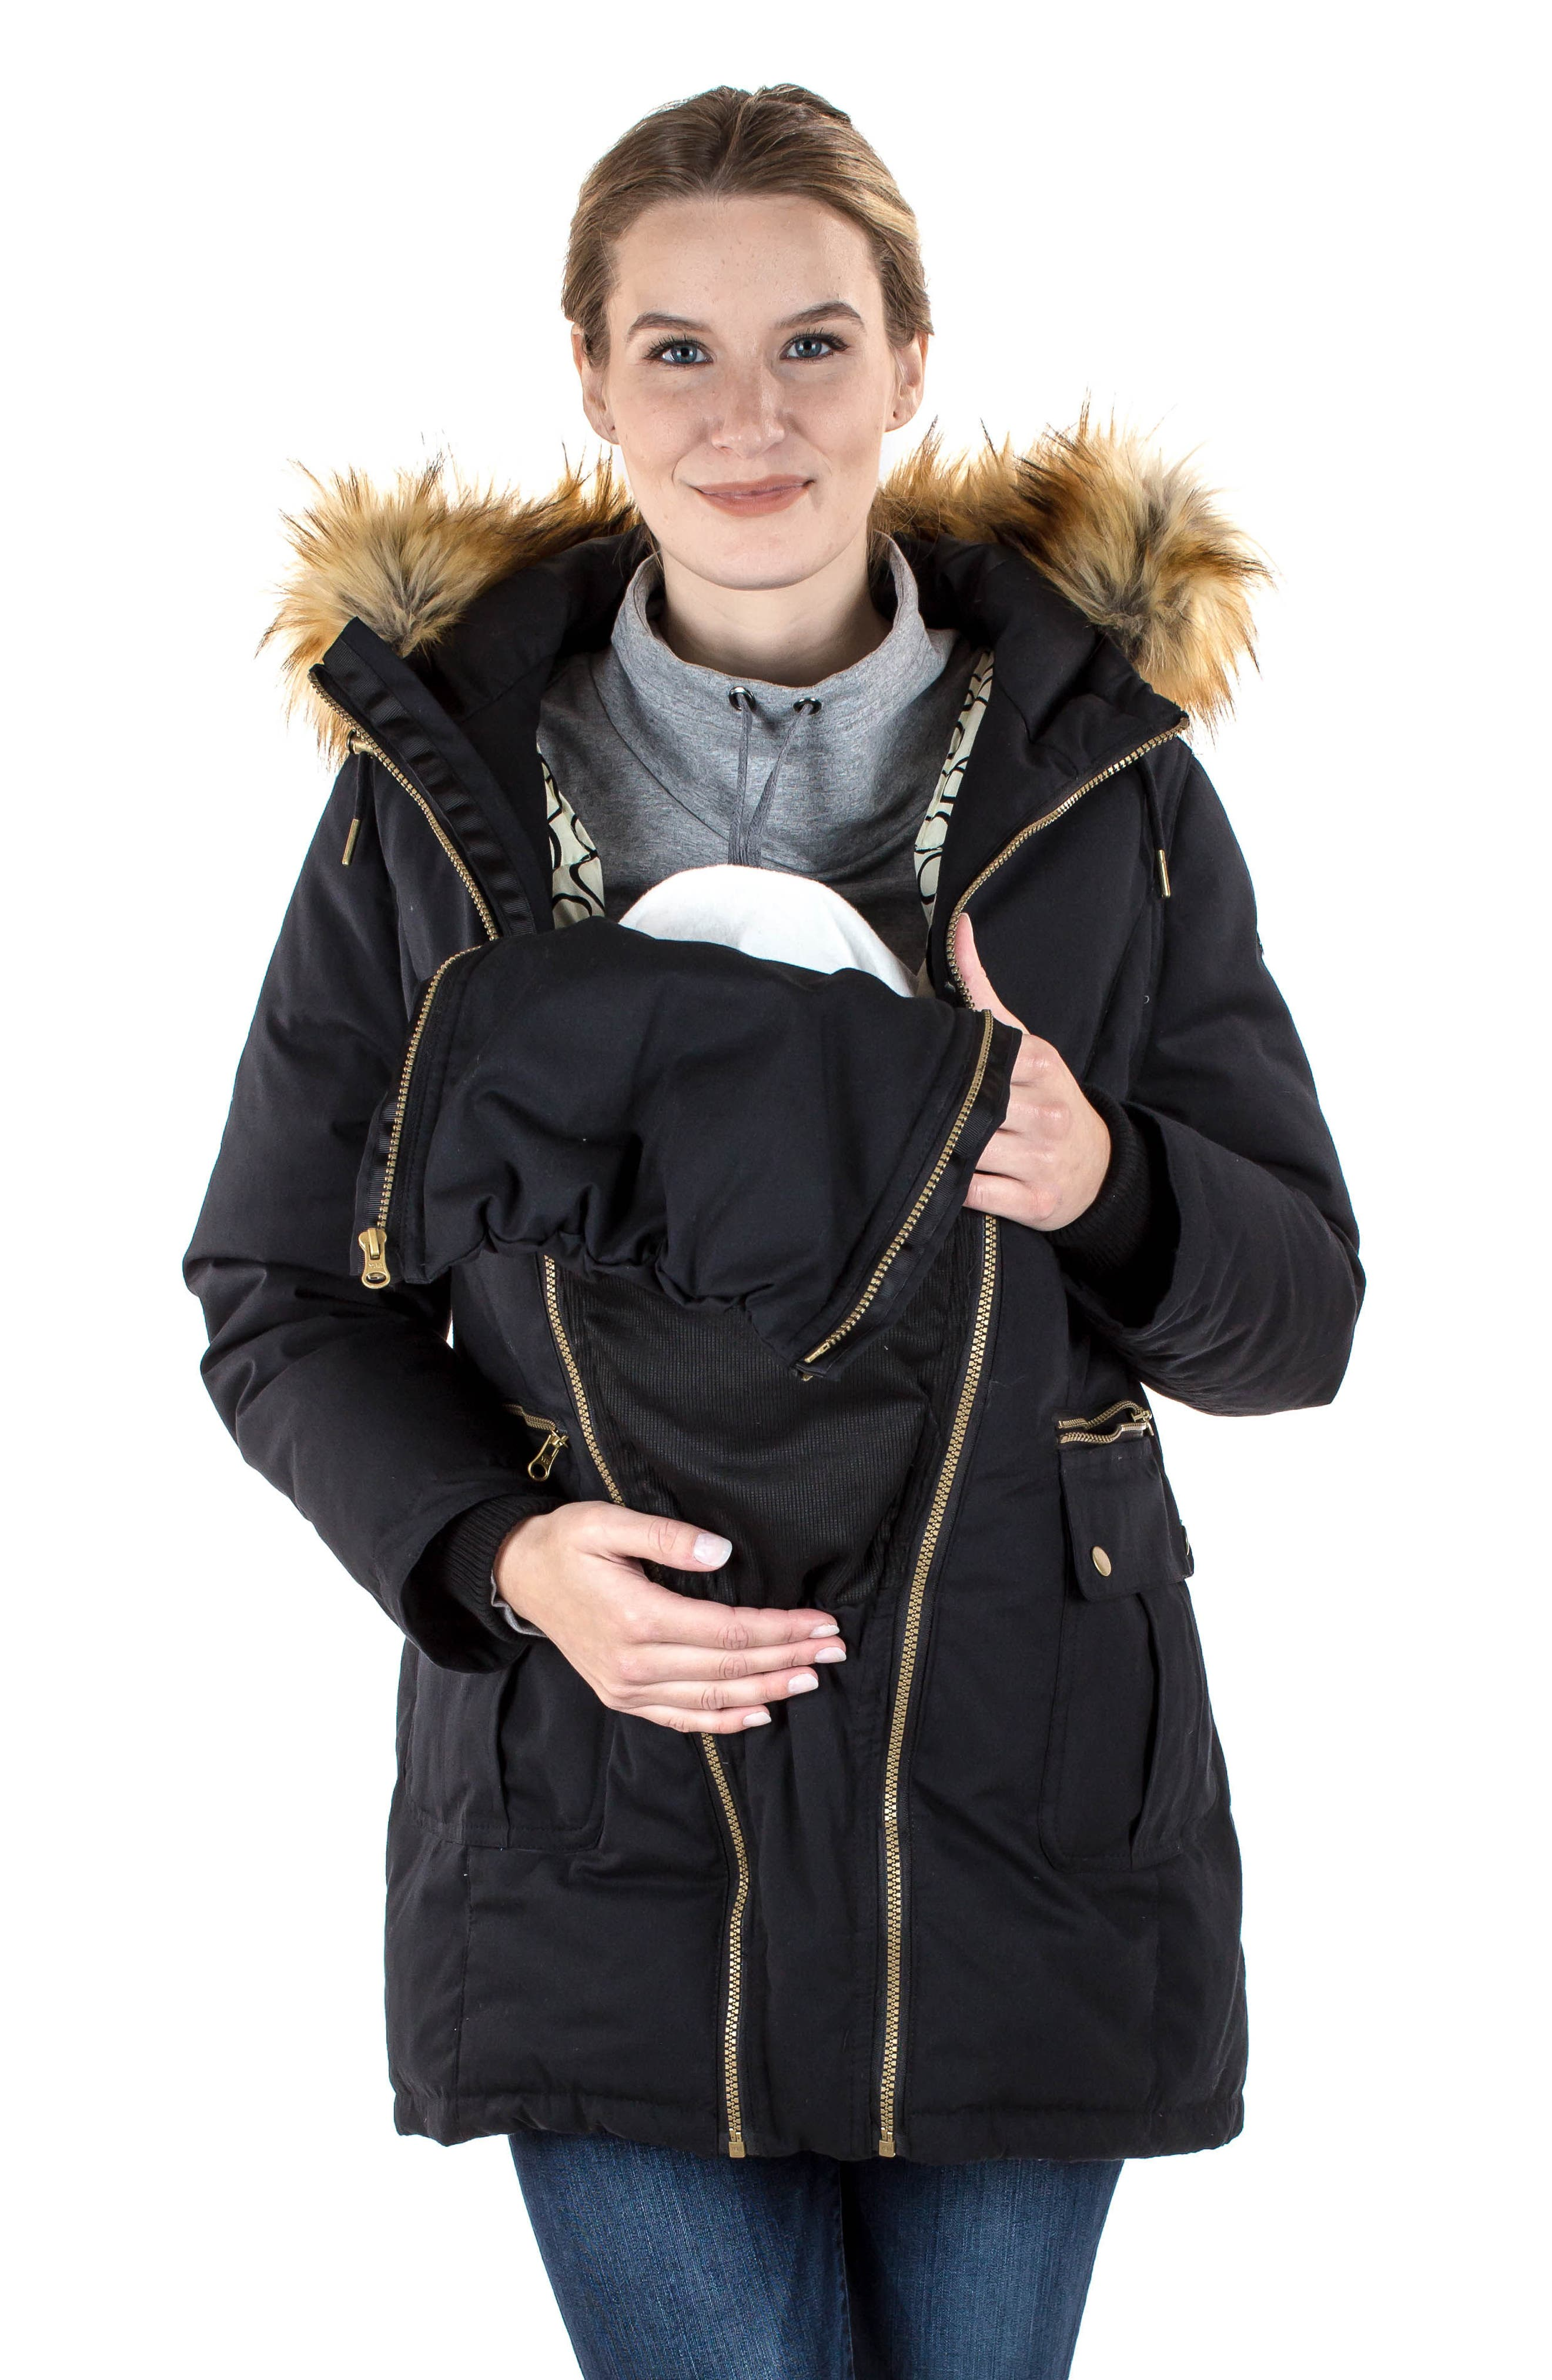 Convertible Down 3-in-1 Maternity Jacket,                             Alternate thumbnail 14, color,                             BLACK